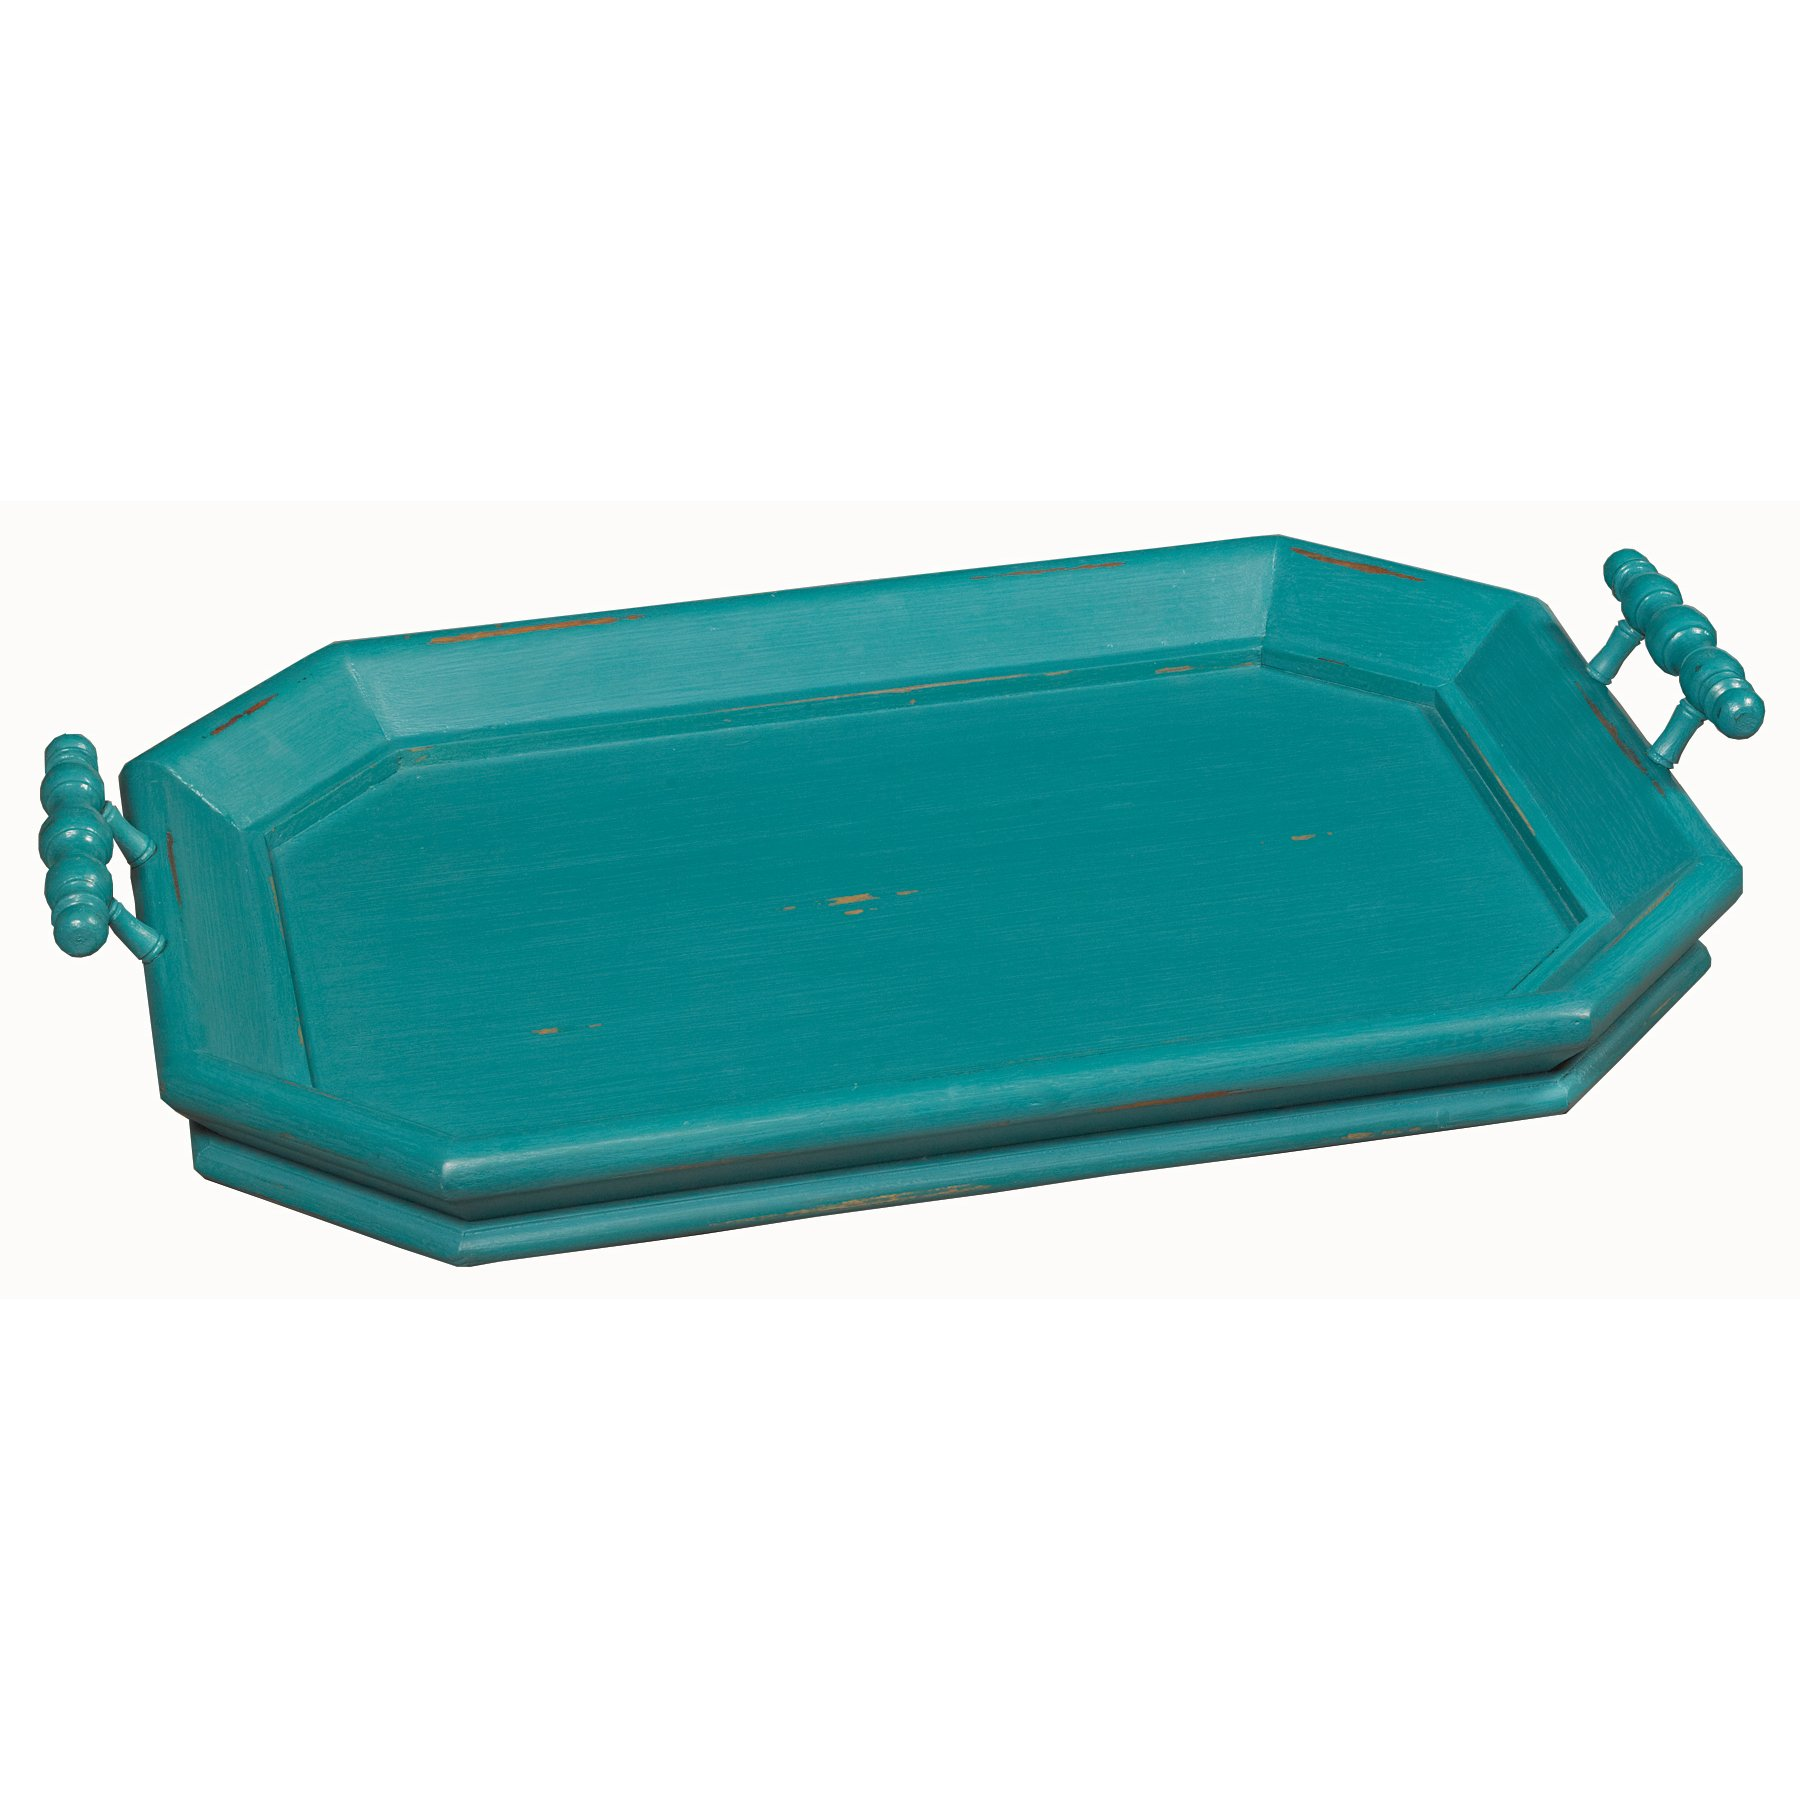 Distressed Teal Octagonal Tray With Handles